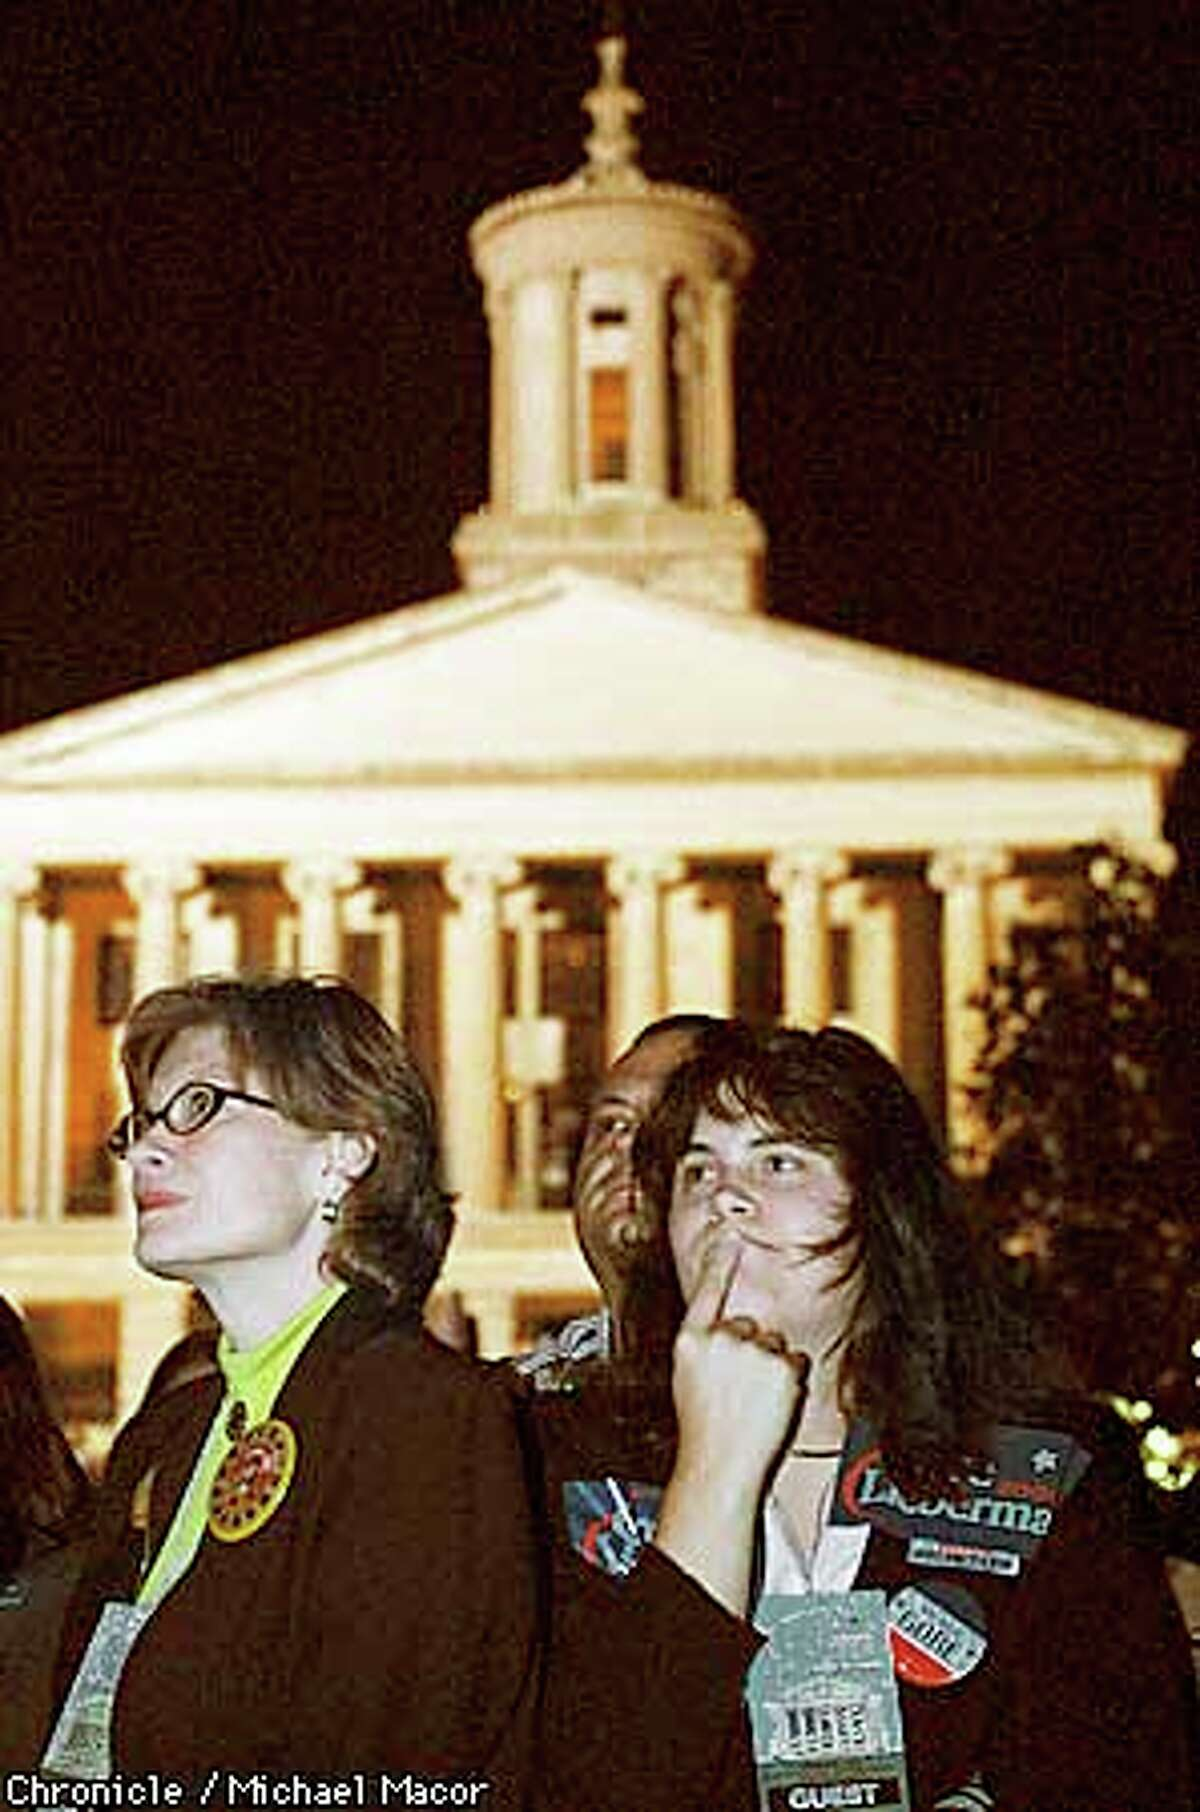 GORENIGHT1-C-07NOV00-MN-MAC Al Gore Election night headquarters in Nashville Tennessee. the Tennesse Stae Capitol building in the background of Gore supporters Barbara Quinn, Terry Rainey and Samantha Rainey. The three watch election returns on big screen TV's at the War Memorial Building. by Michael Macor/The Chronicle